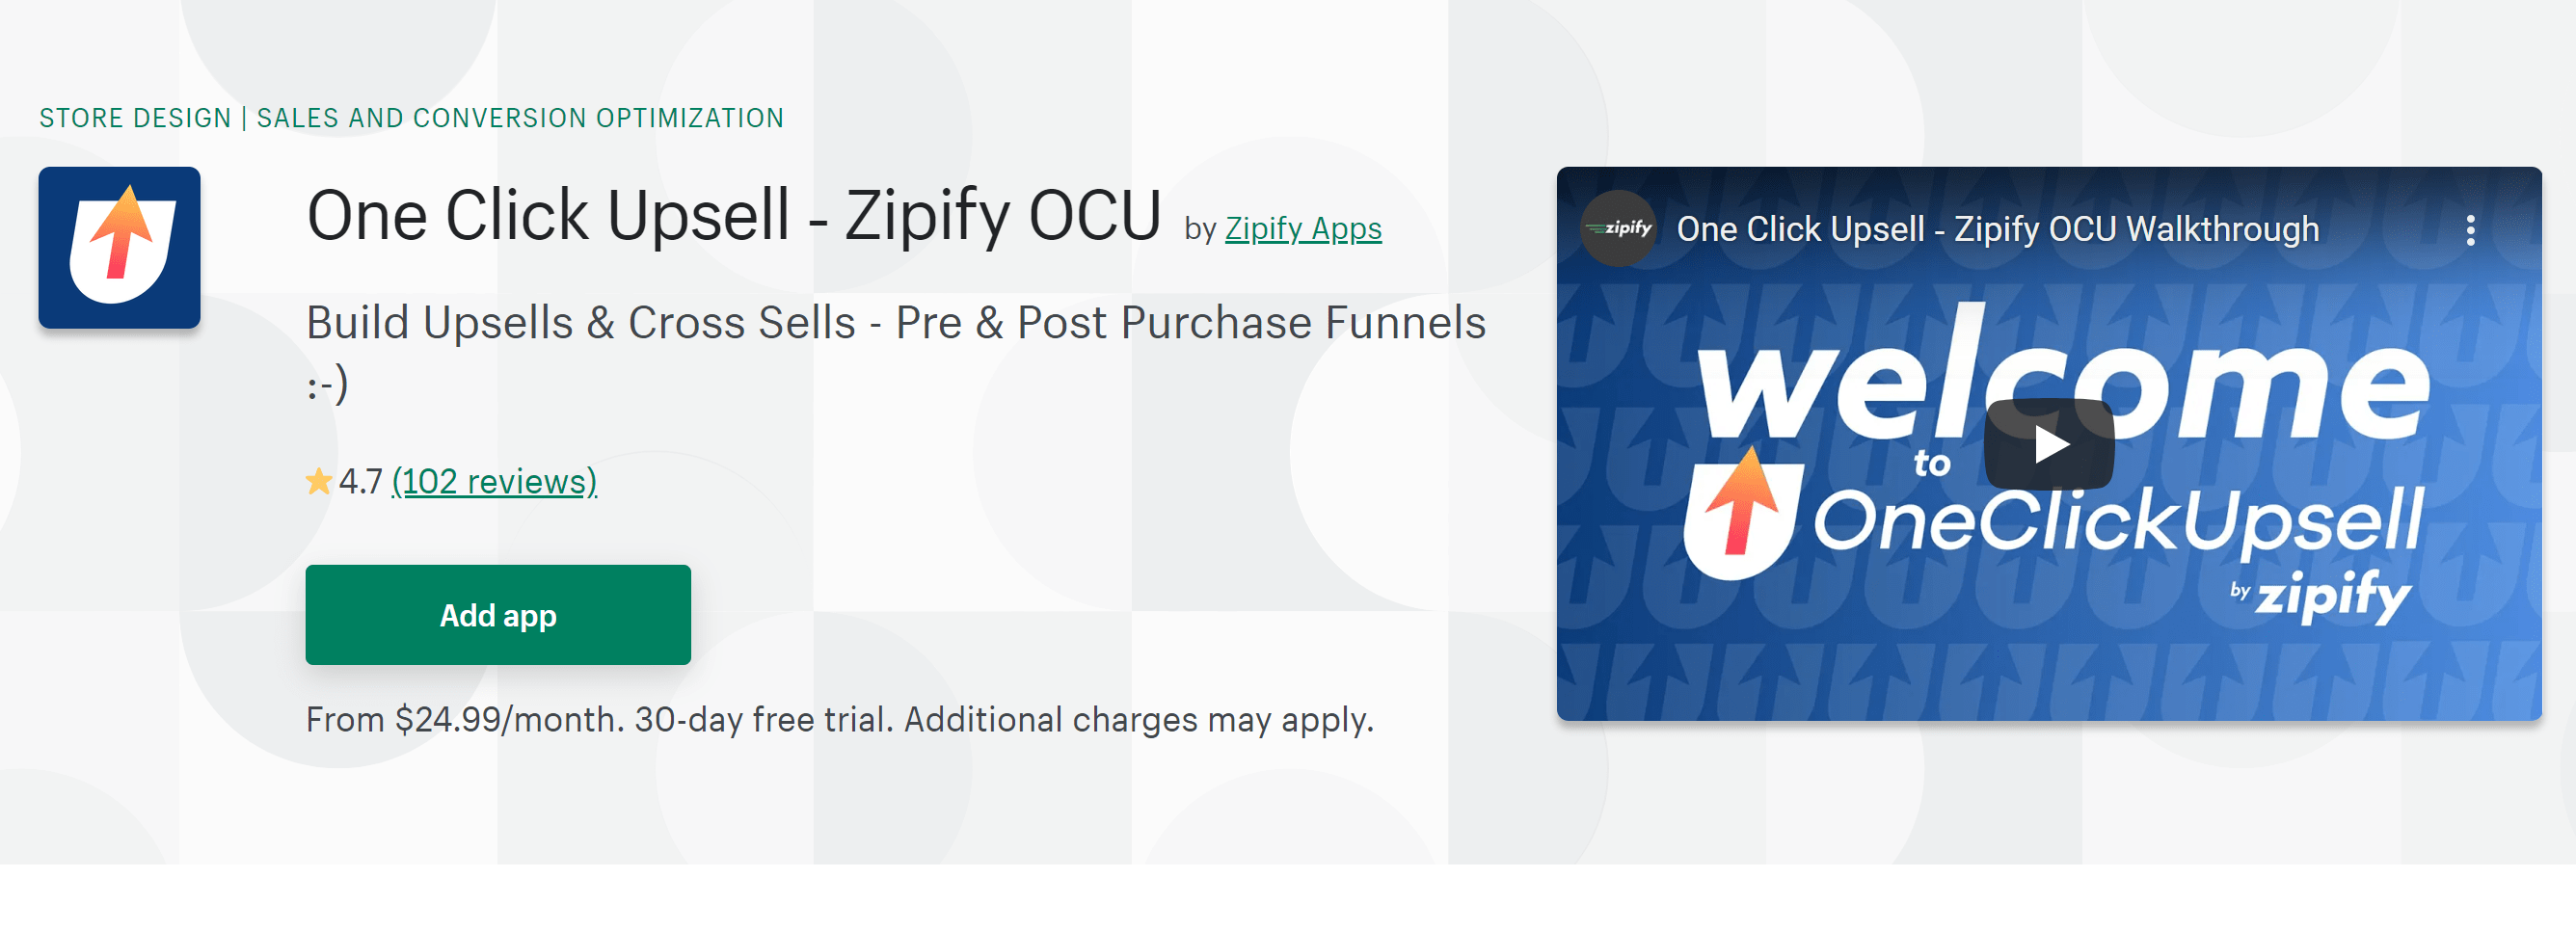 one clickupsell Zipify reviews